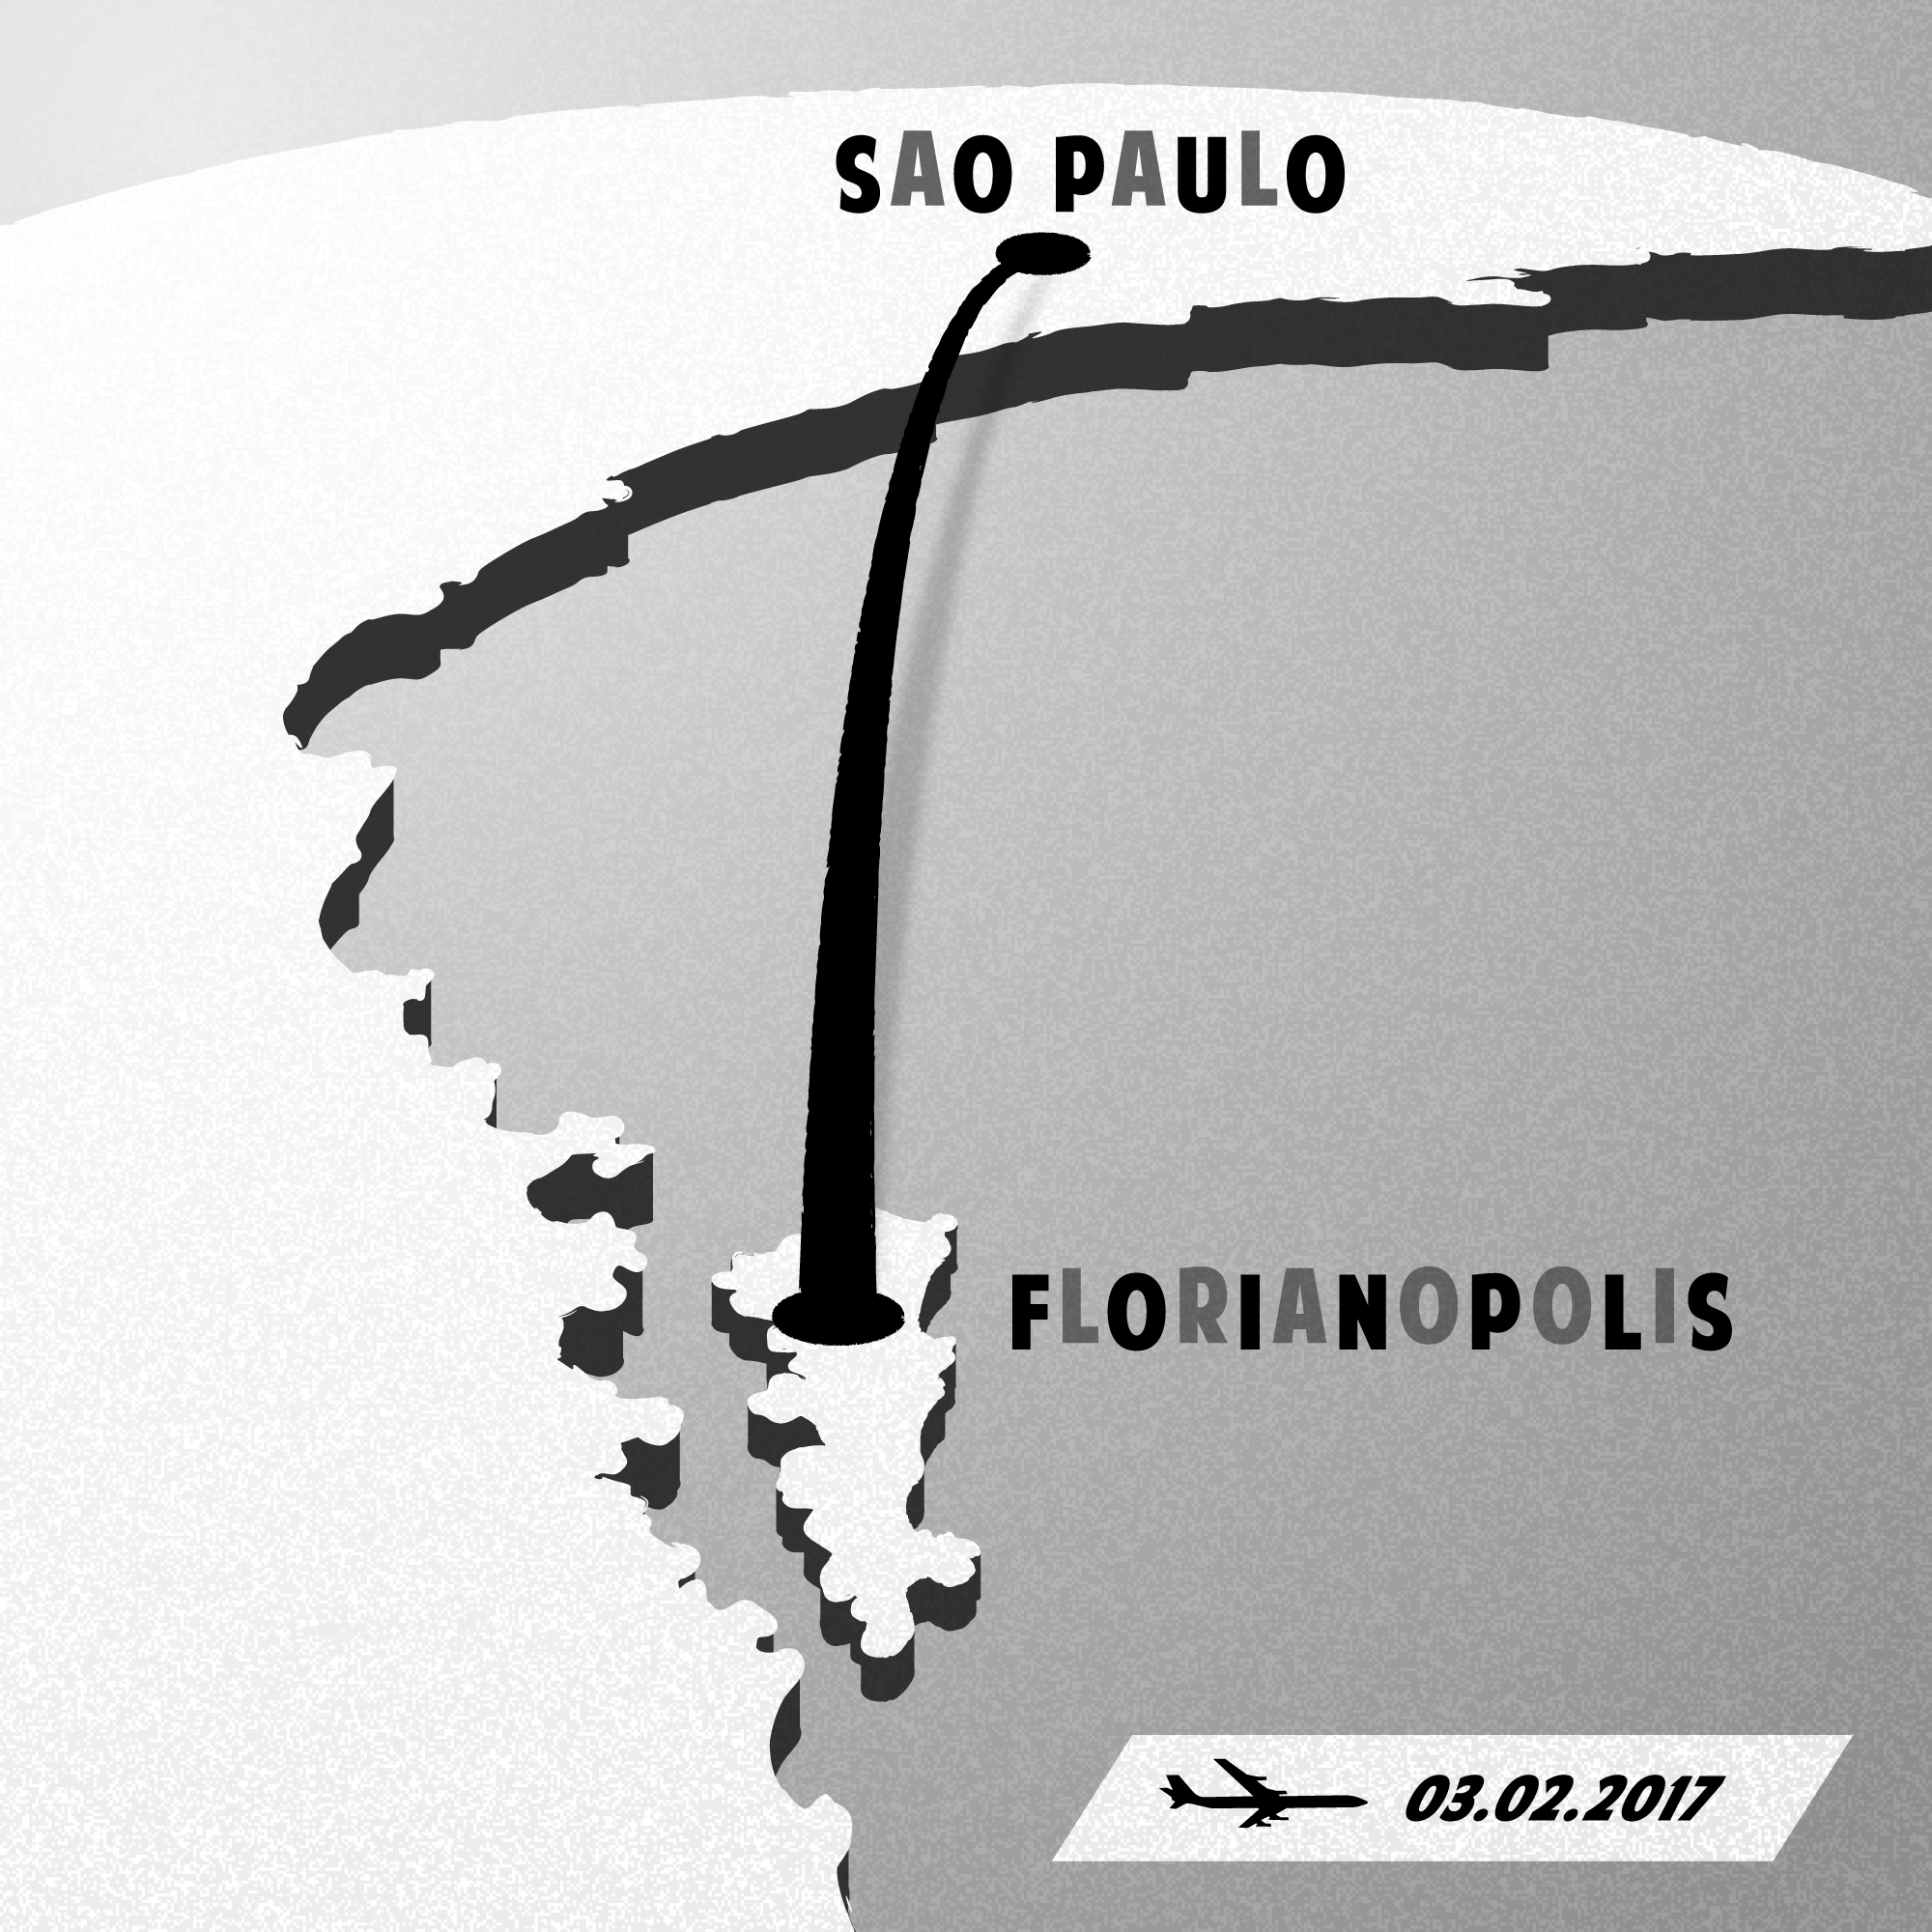 Florianopolis to Sao Paulo vintage inspired poster